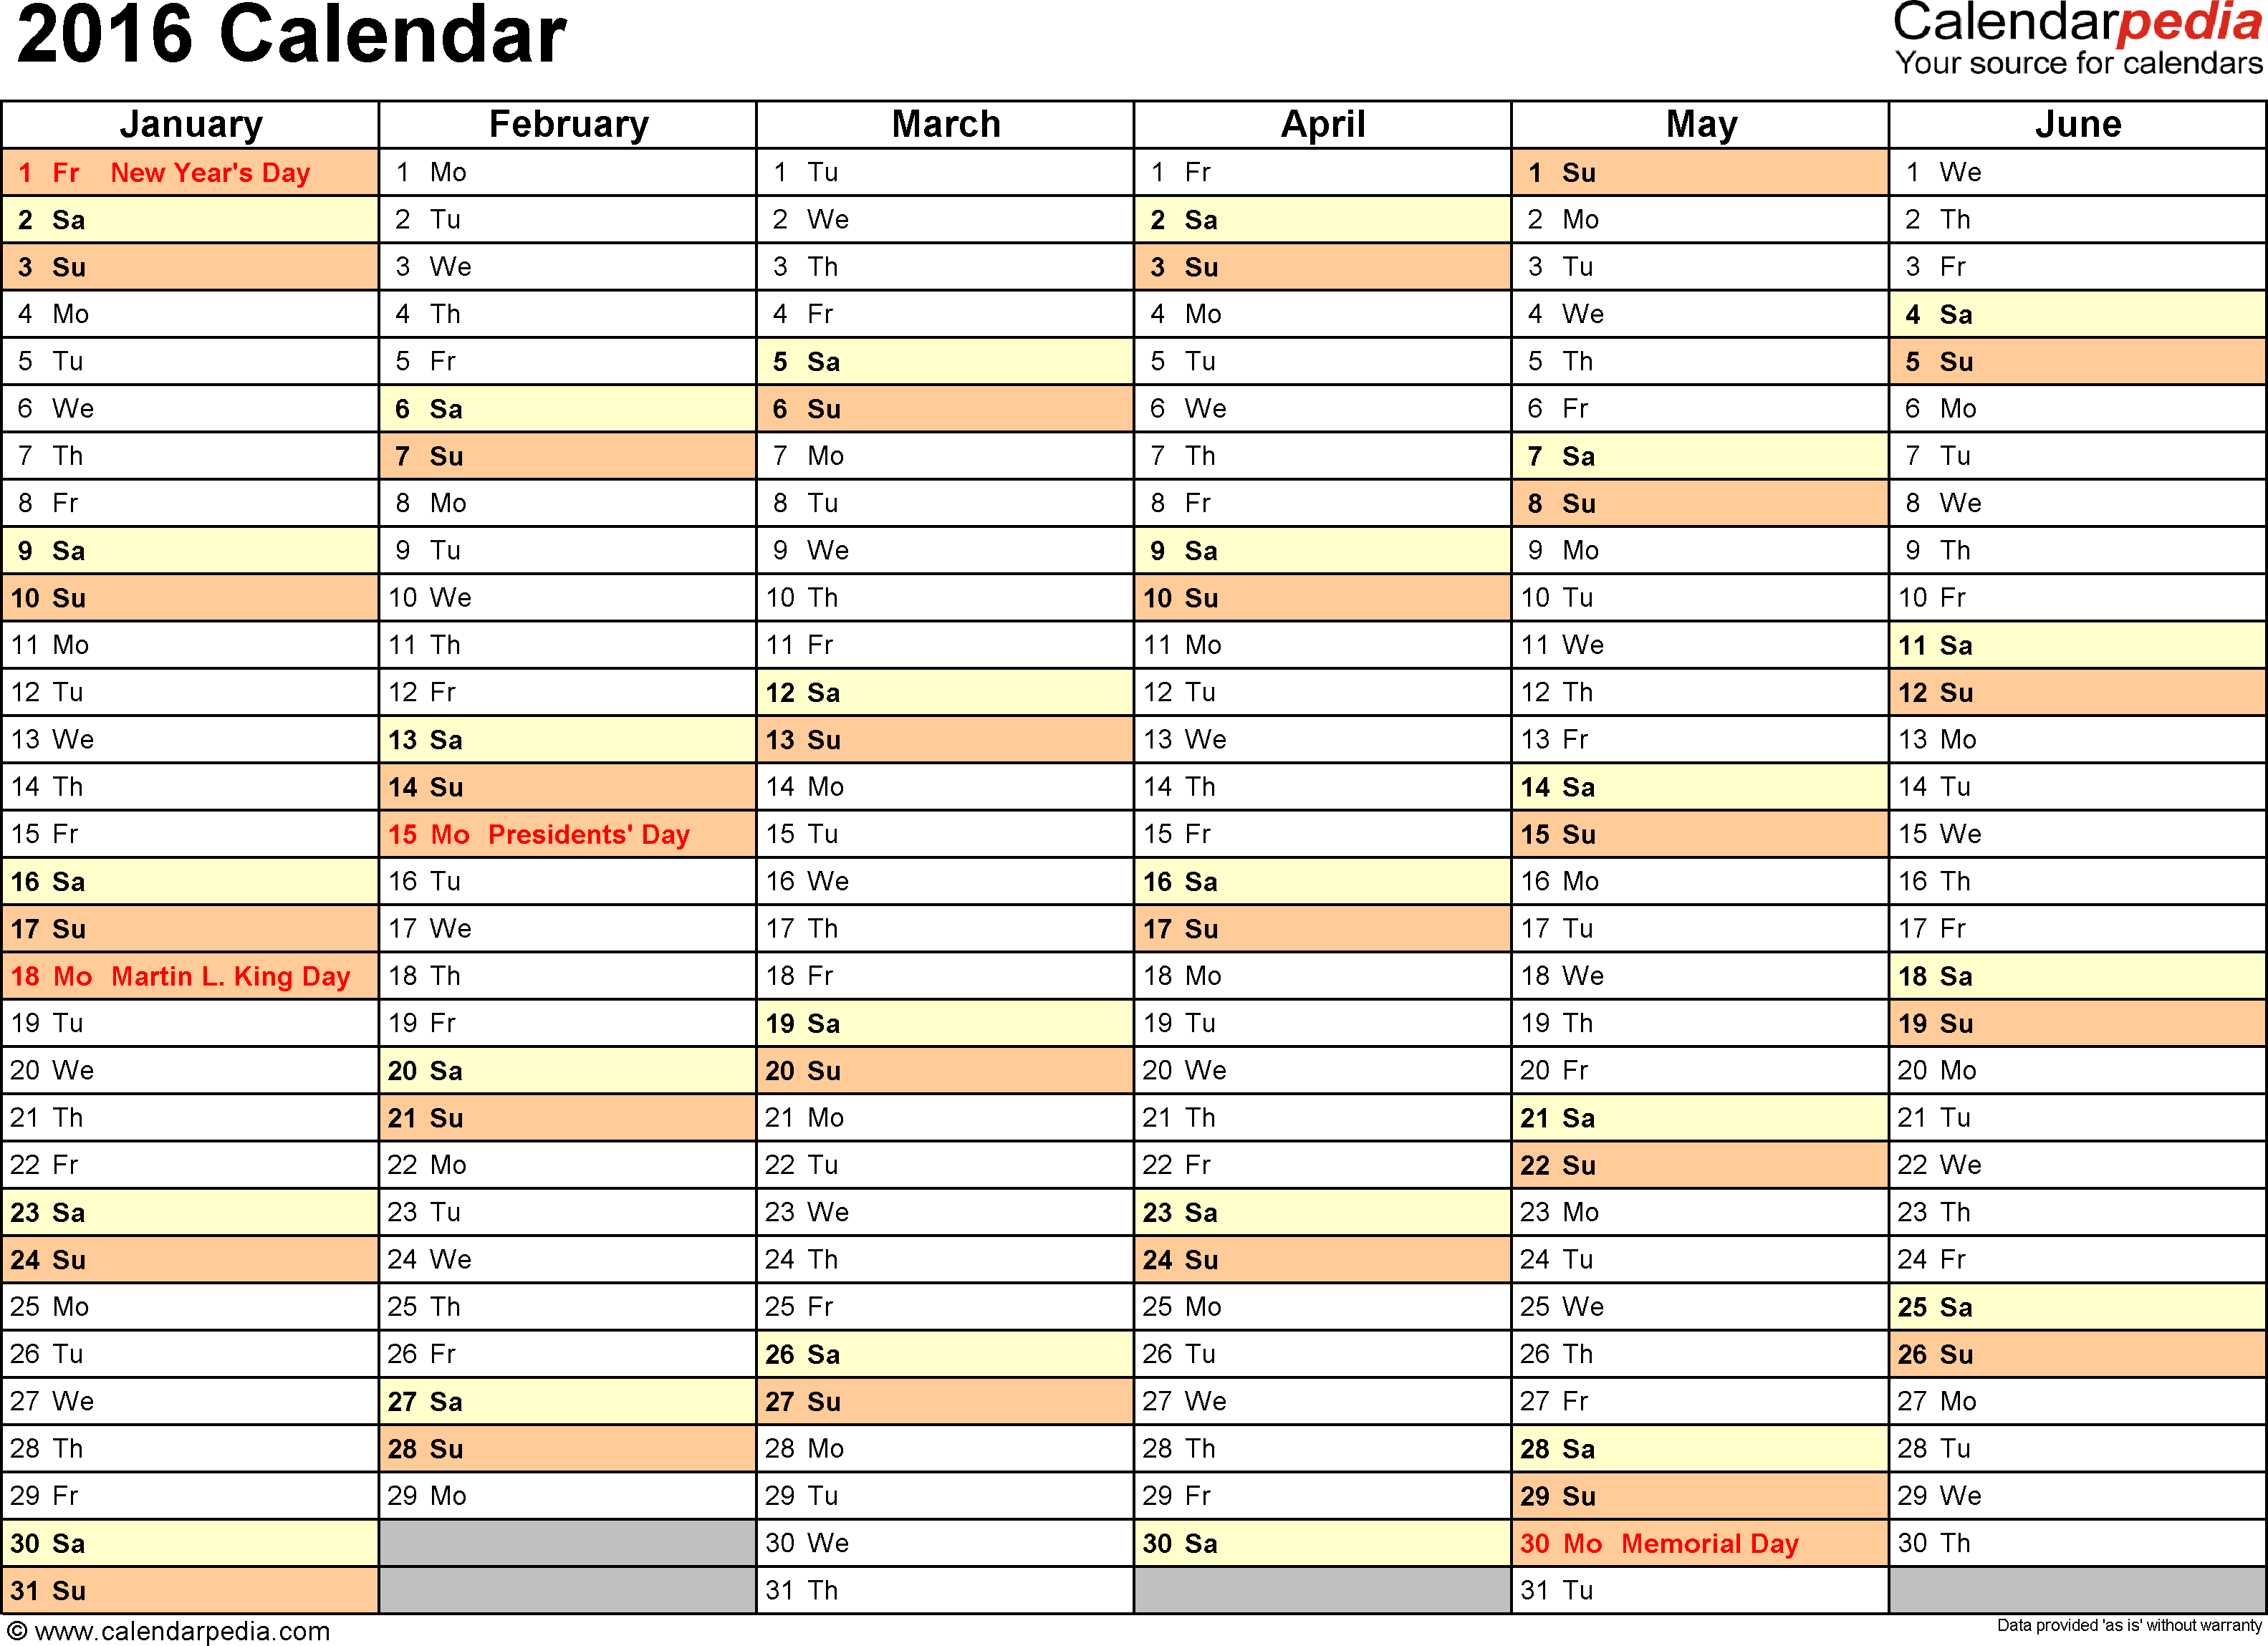 Calendar Download Free Printable Excel Templates Xlsx - Google docs calendar template 2016